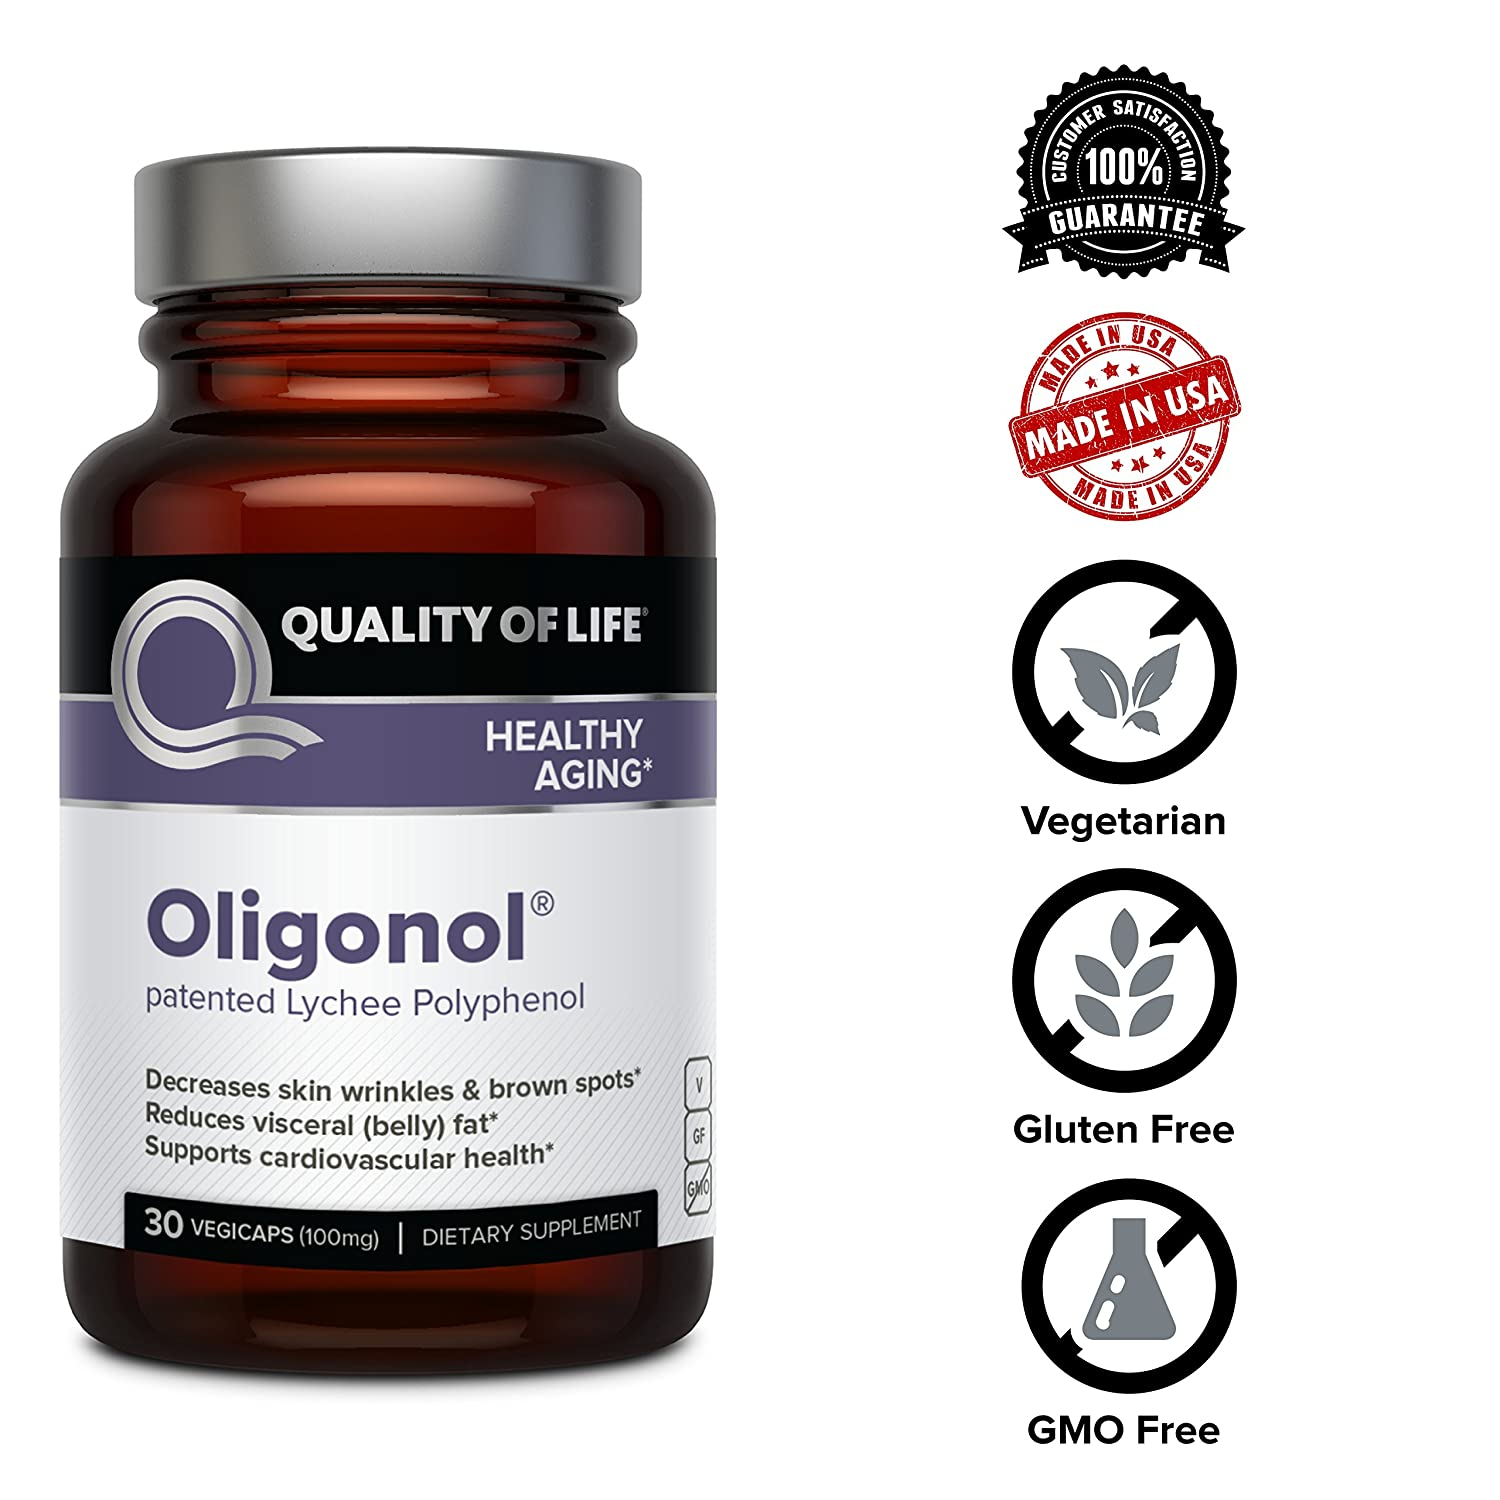 Watch Oligonol Health Benefits and Uses video